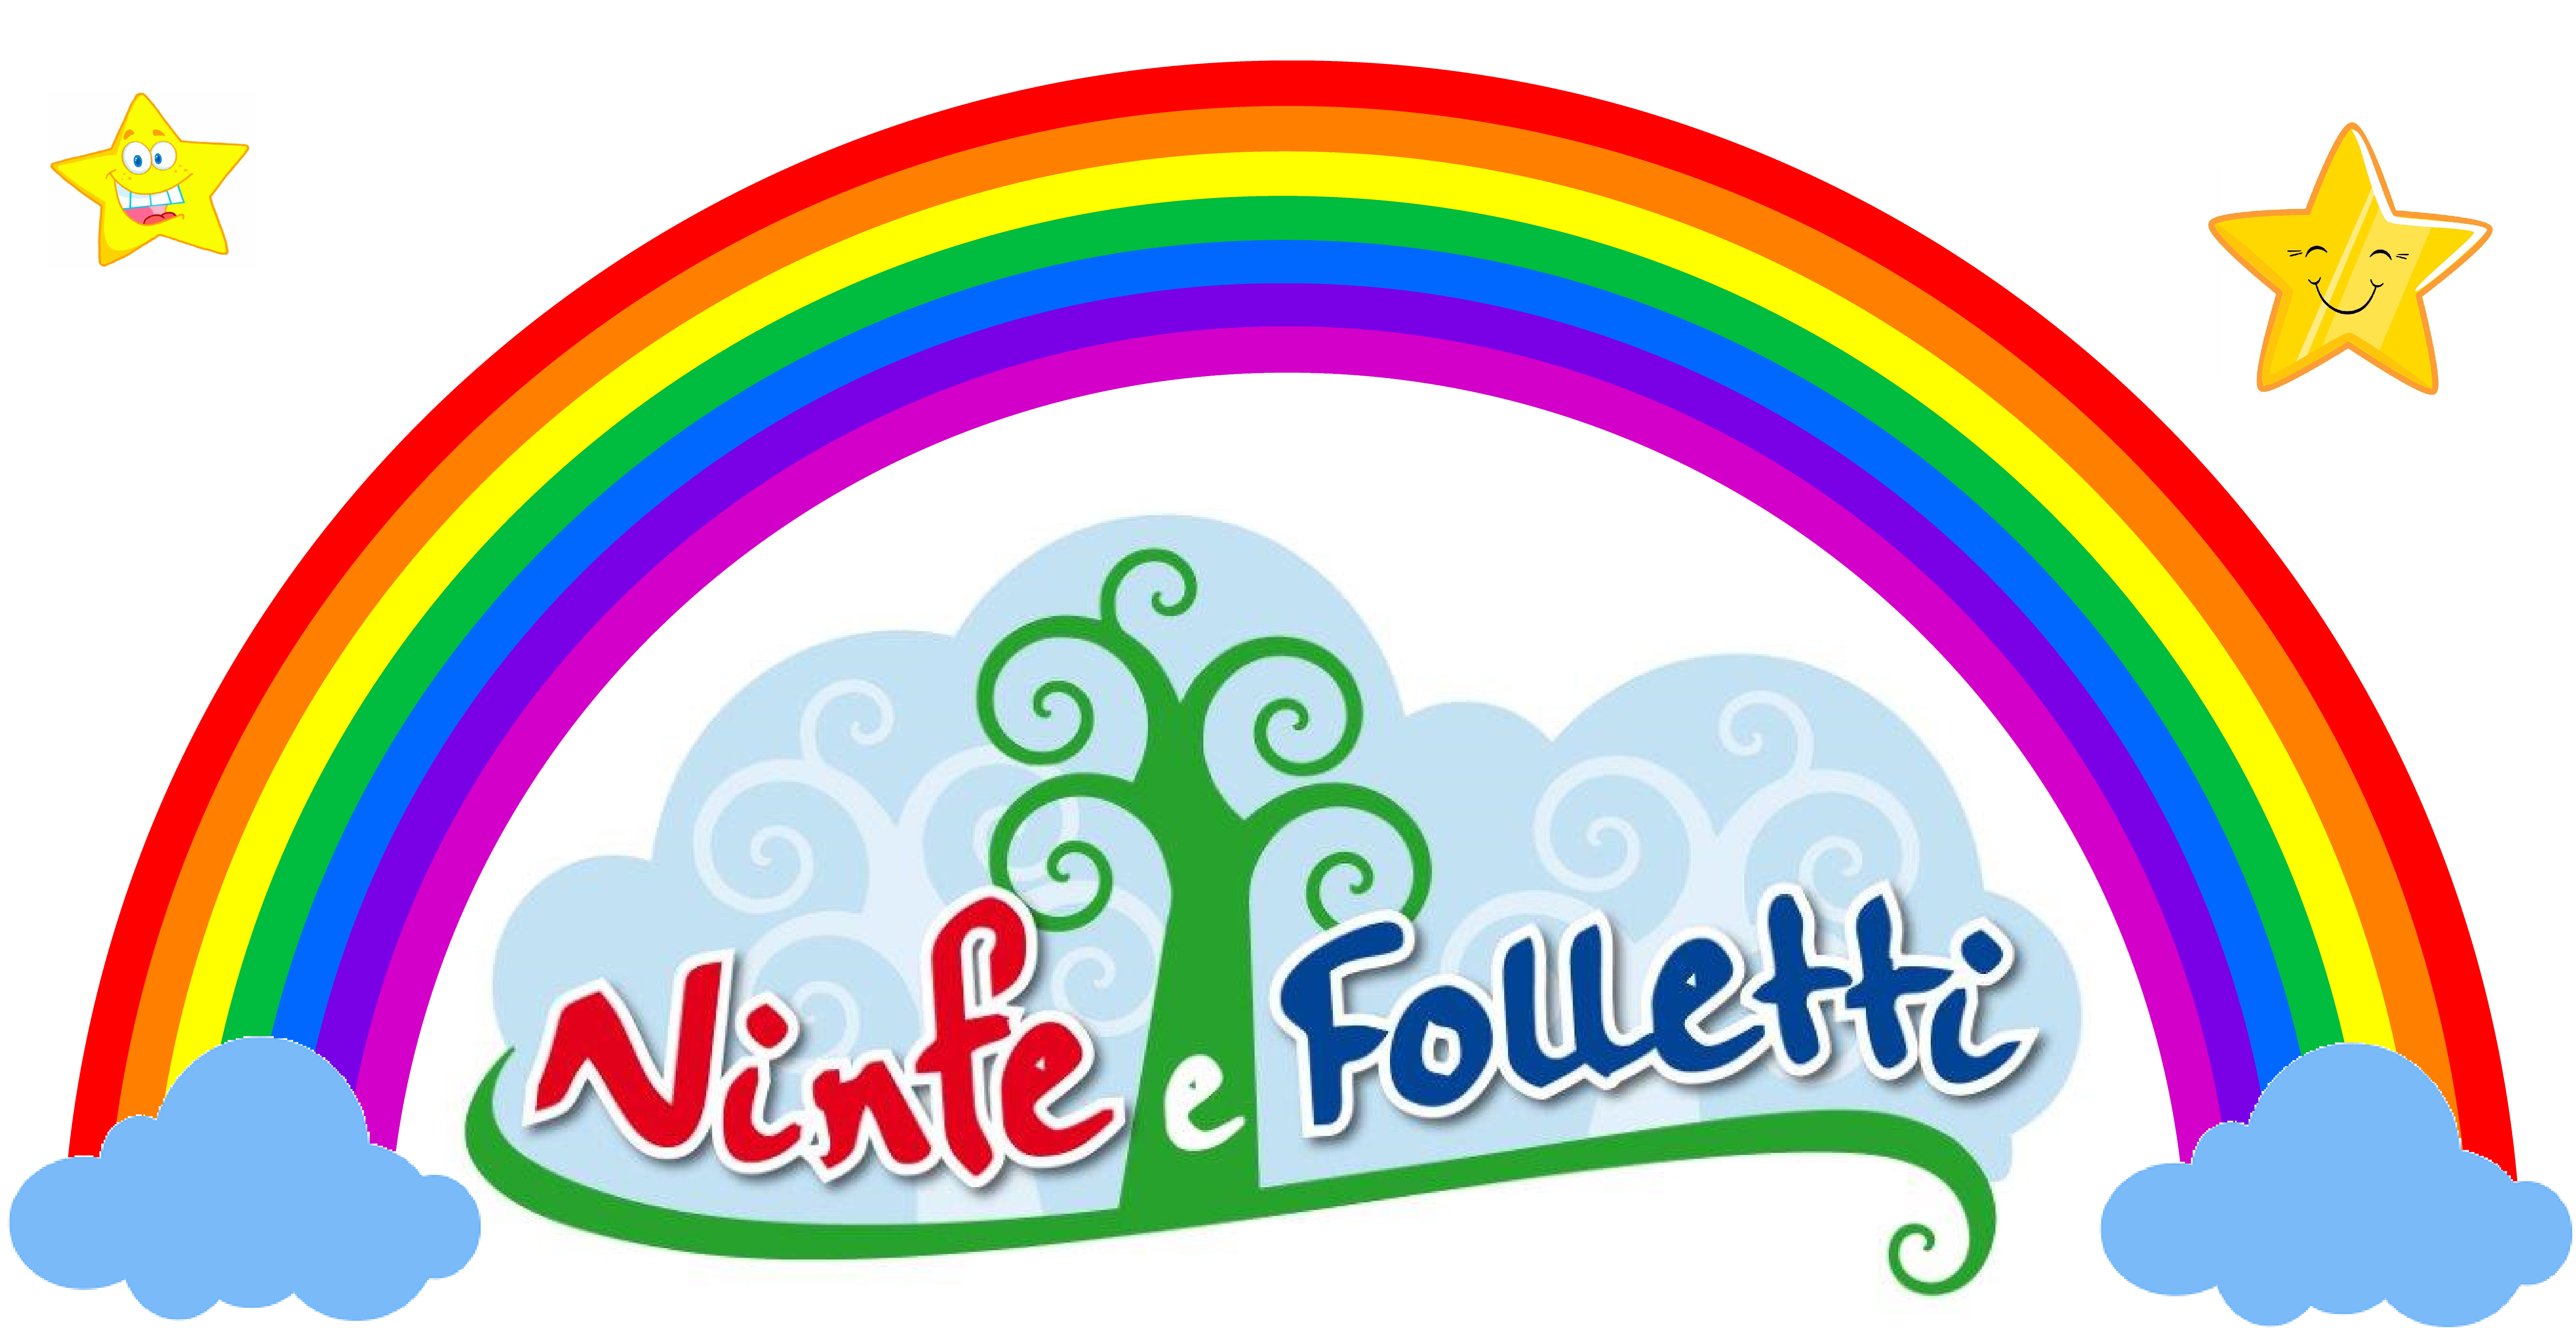 Ninfe & Folletti